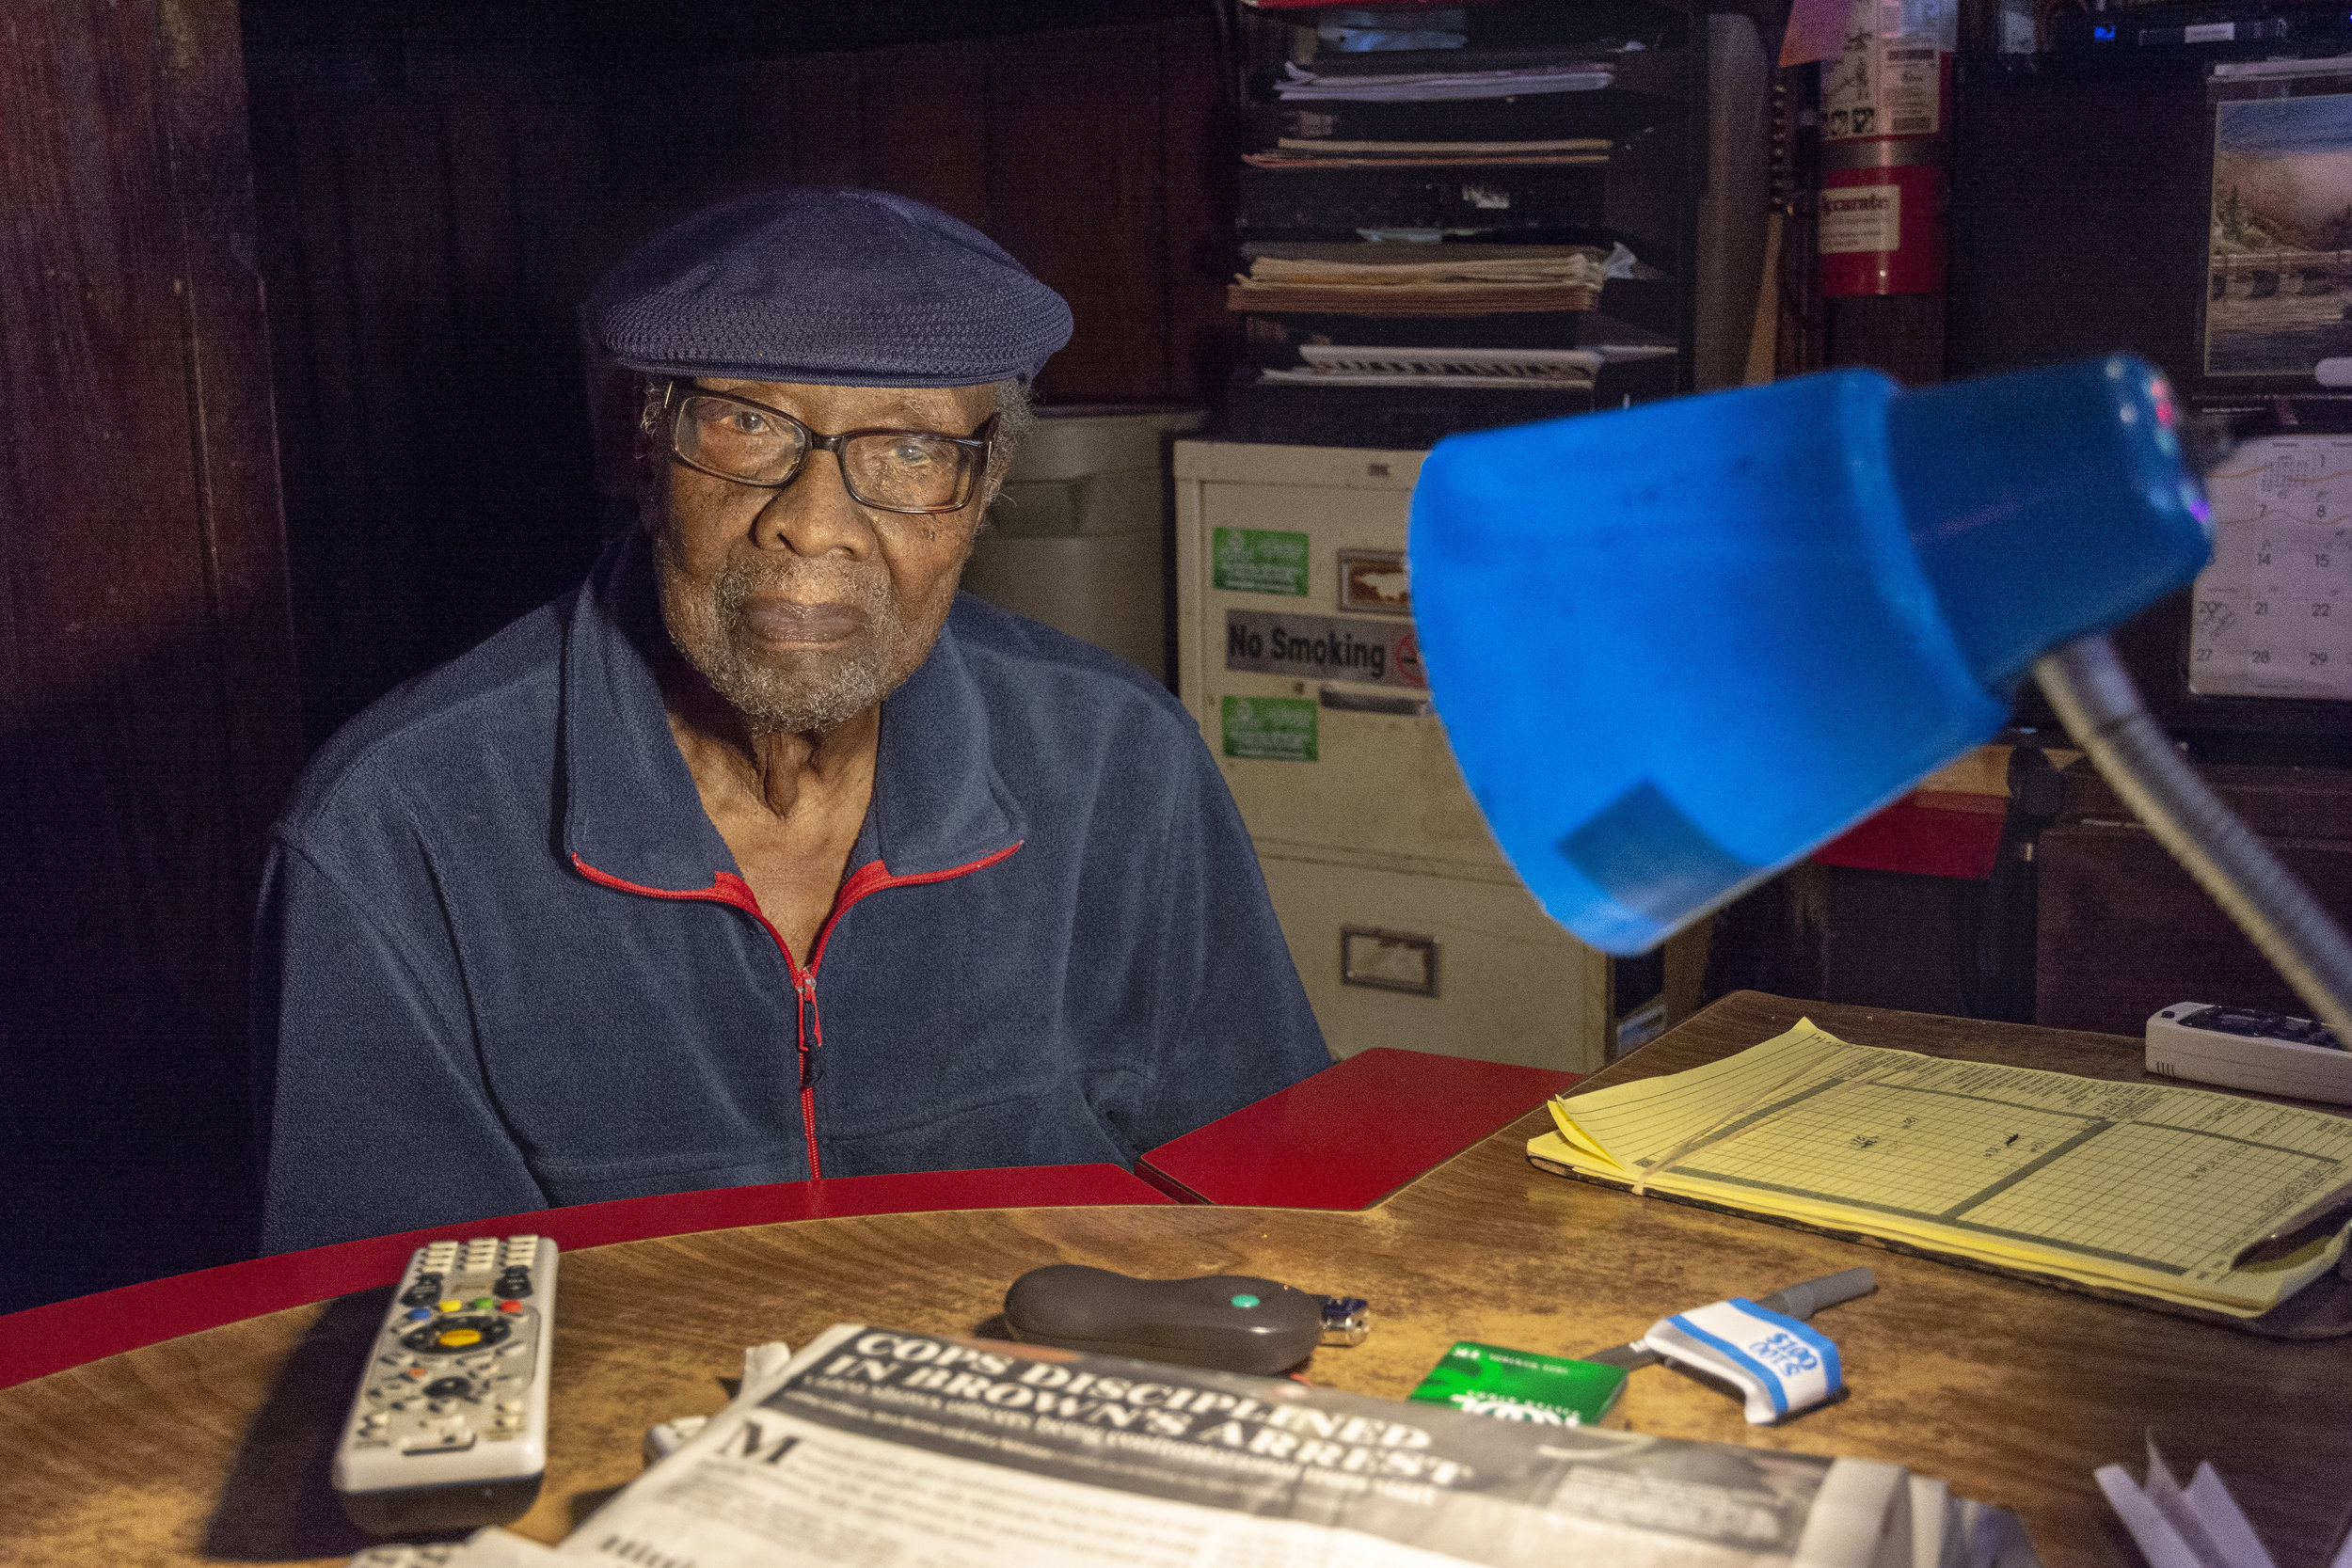 Warren Harper has owned and operated Warrens Lounge for 48 years. The lounge is located on the rim of one of Milwaukee's hardcore inner city neighborhoods where crime creates constant fear. Over the years, Warren has watched almost all the businesses on his block close down including a church. But his bar is still doing all right.